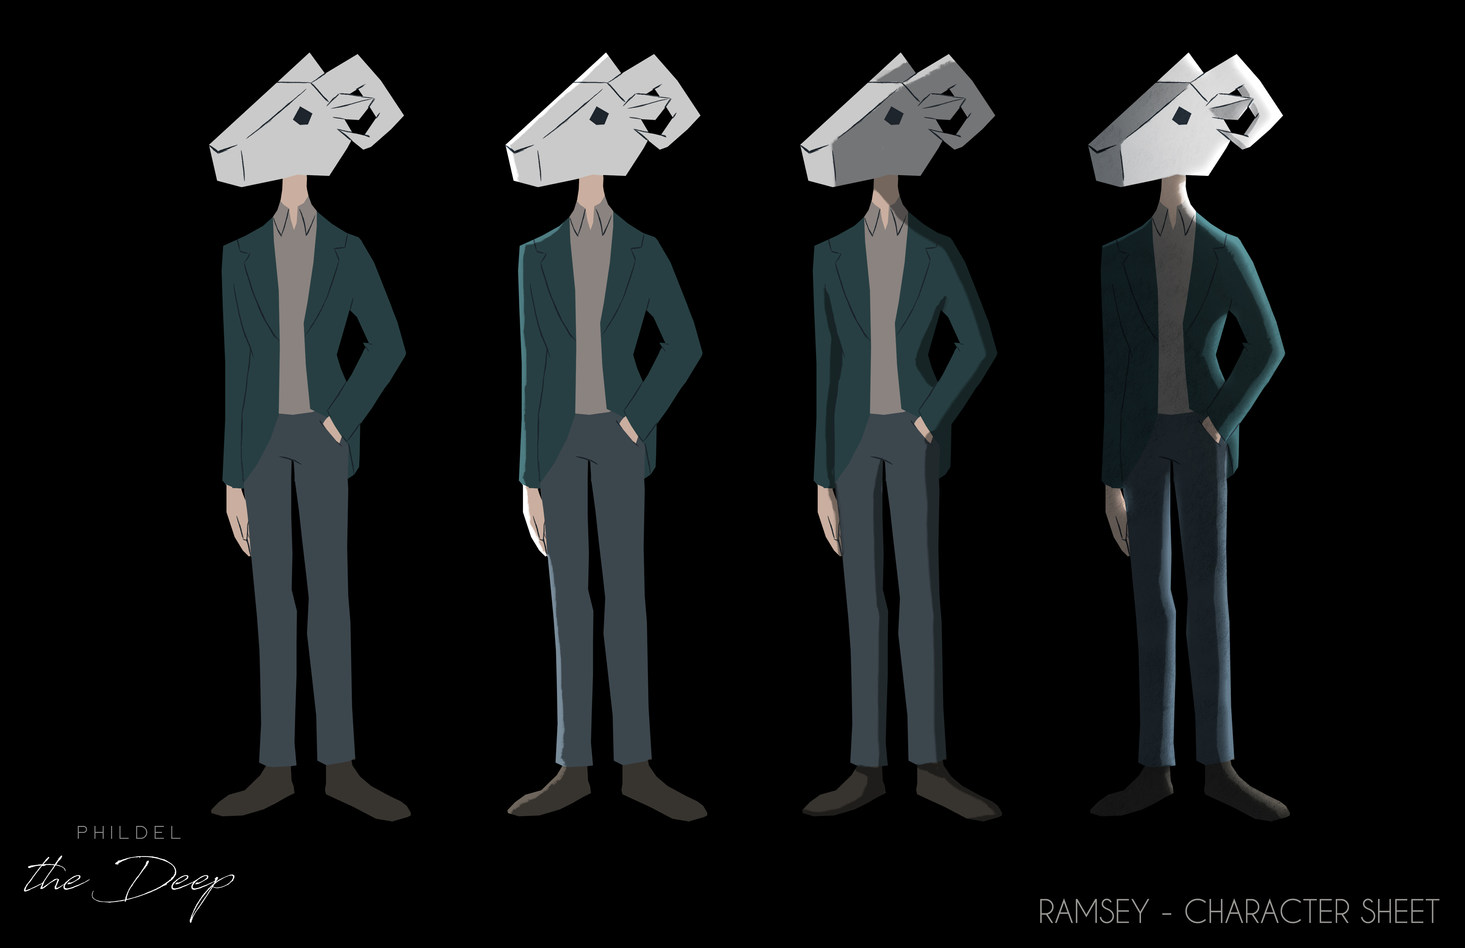 CharacterSketches_Ramsey_StyleTest.jpg